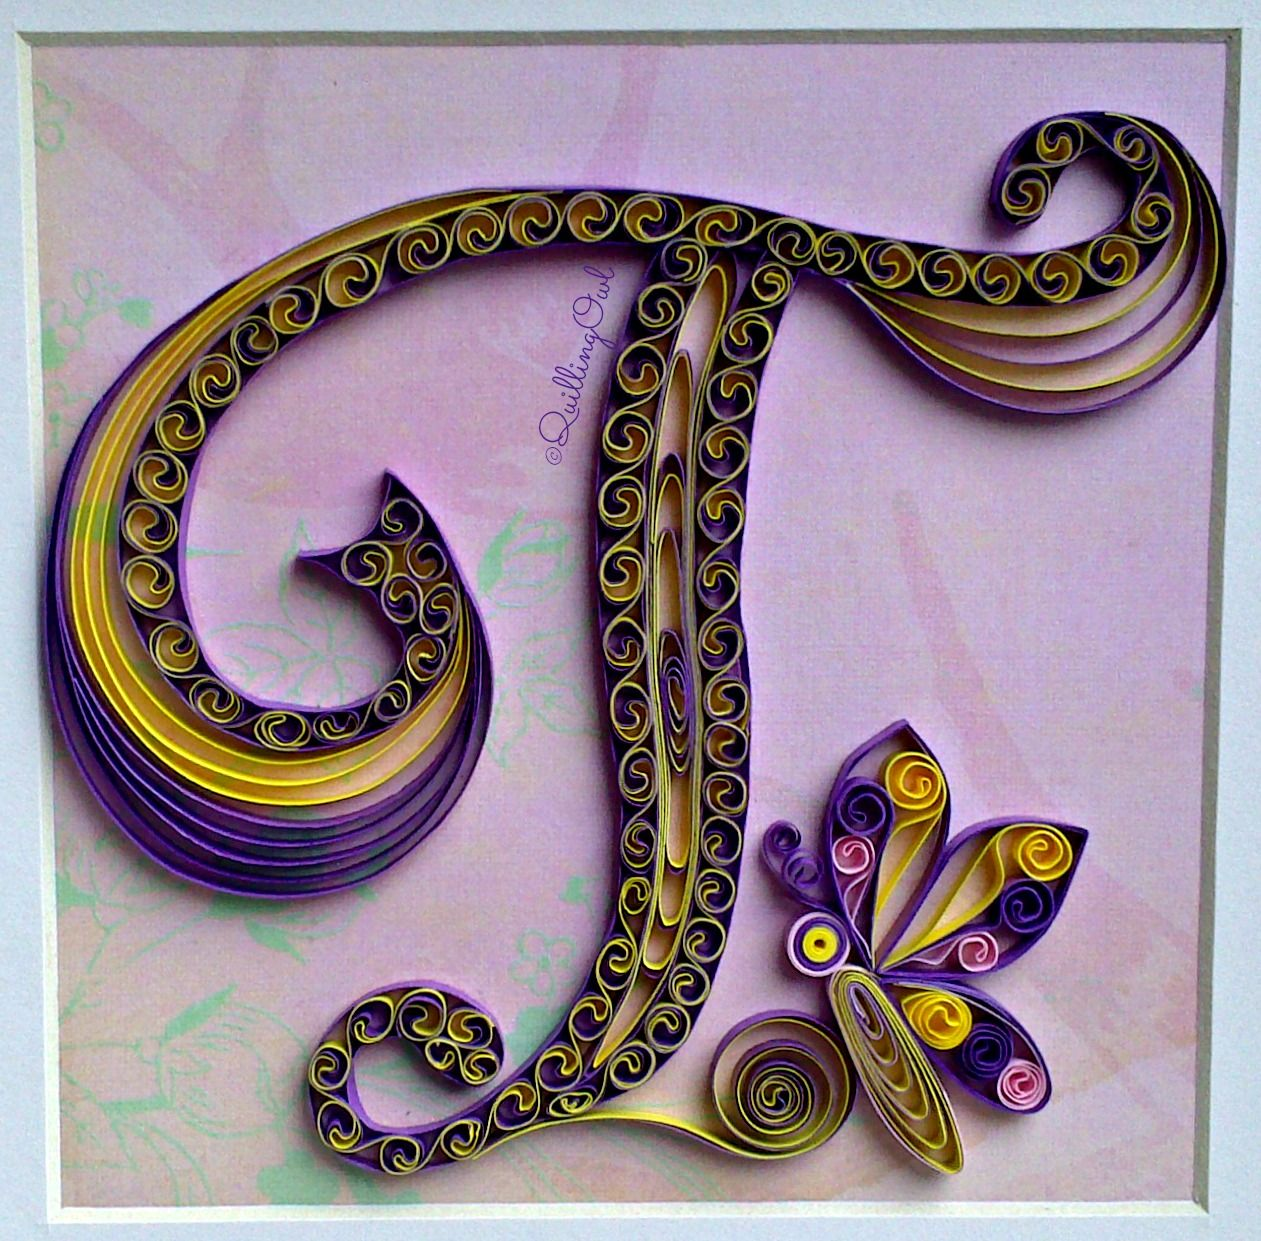 Quilled letter t created using 3mm strips of paper quilled letter t created using 3mm strips of paper altavistaventures Images